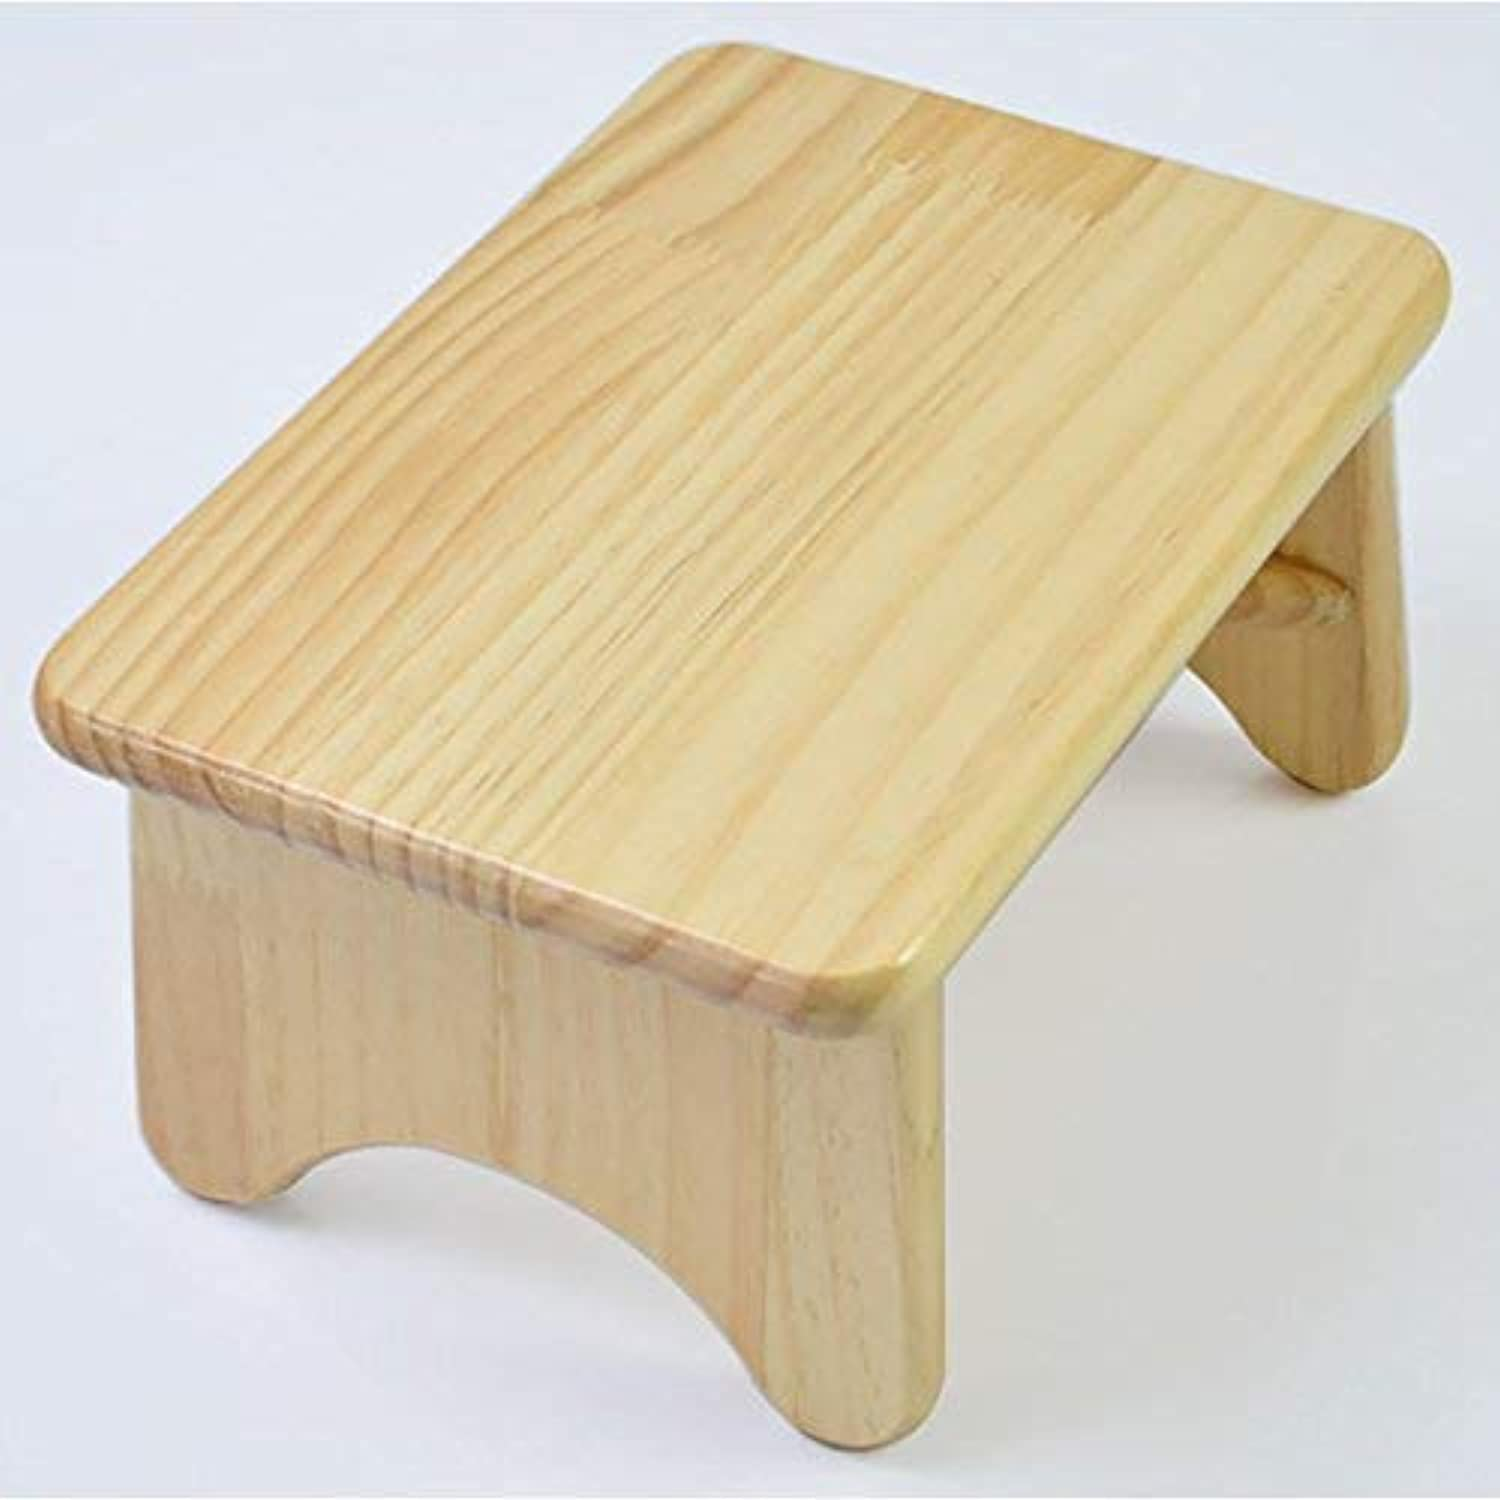 JZX Stool, Living Room Solid Wood Square Footstool, Small Bench